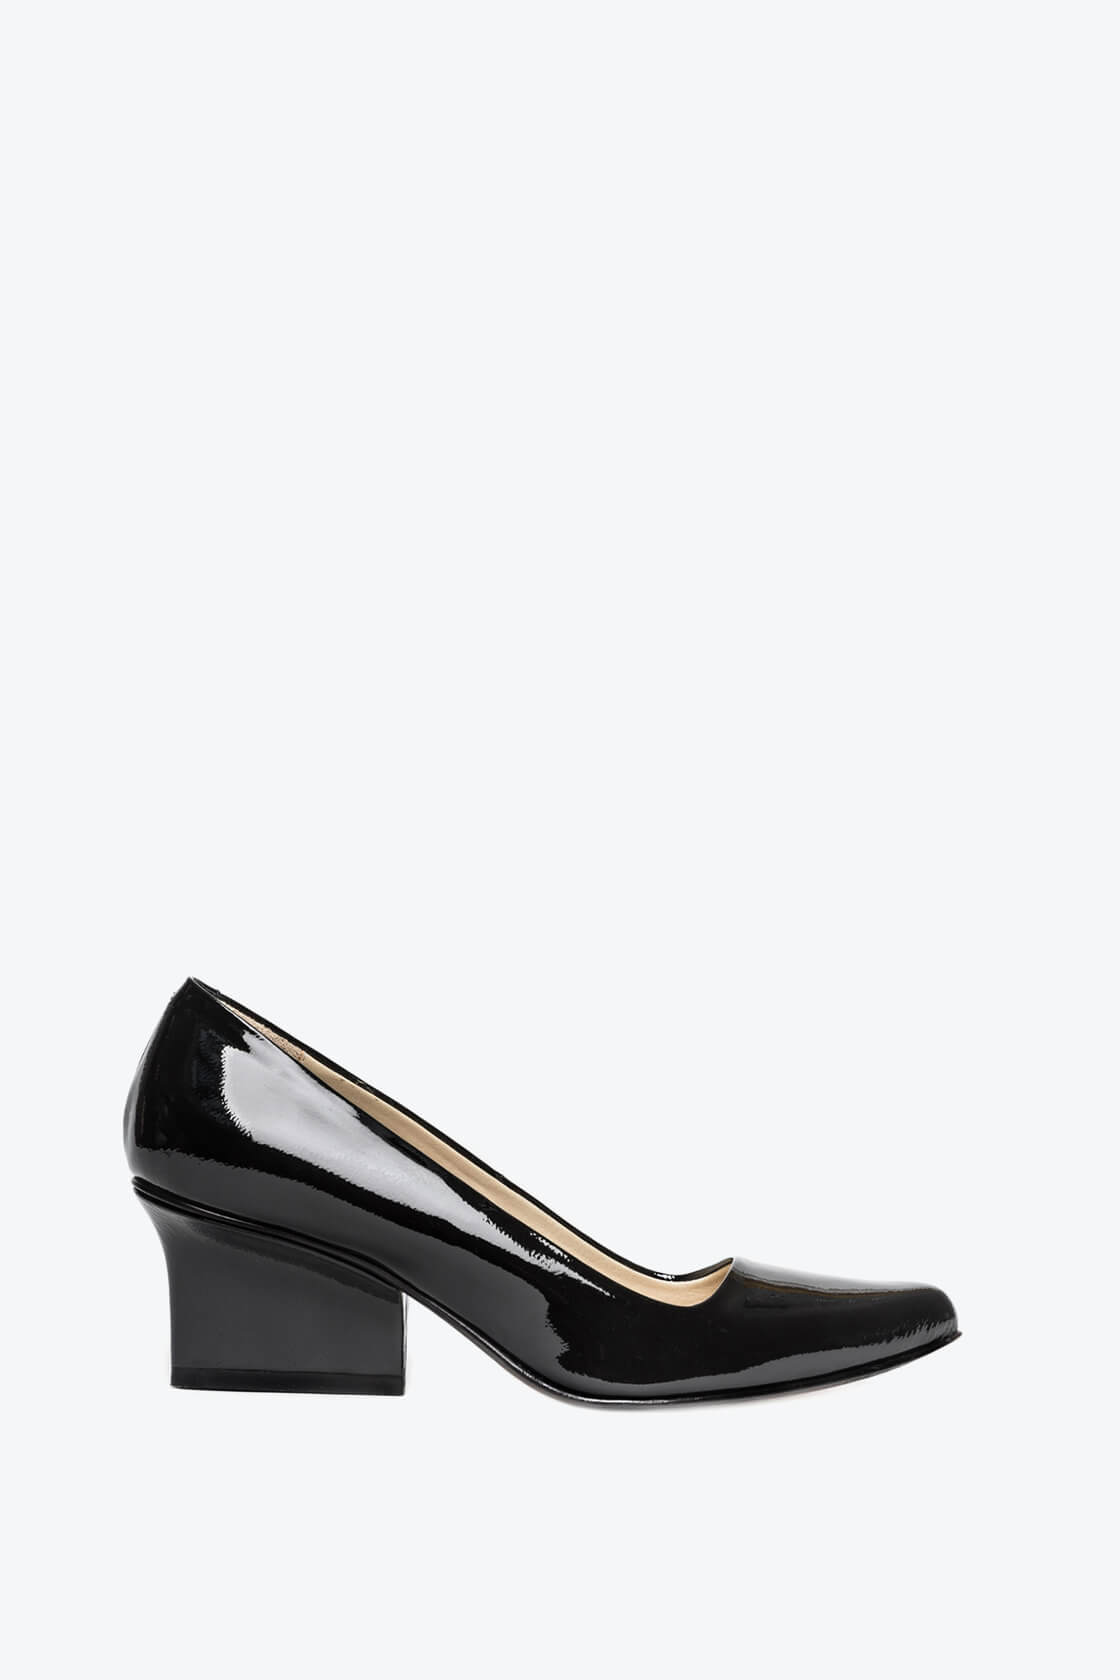 EJK0000035 Jo pumps black patent 1